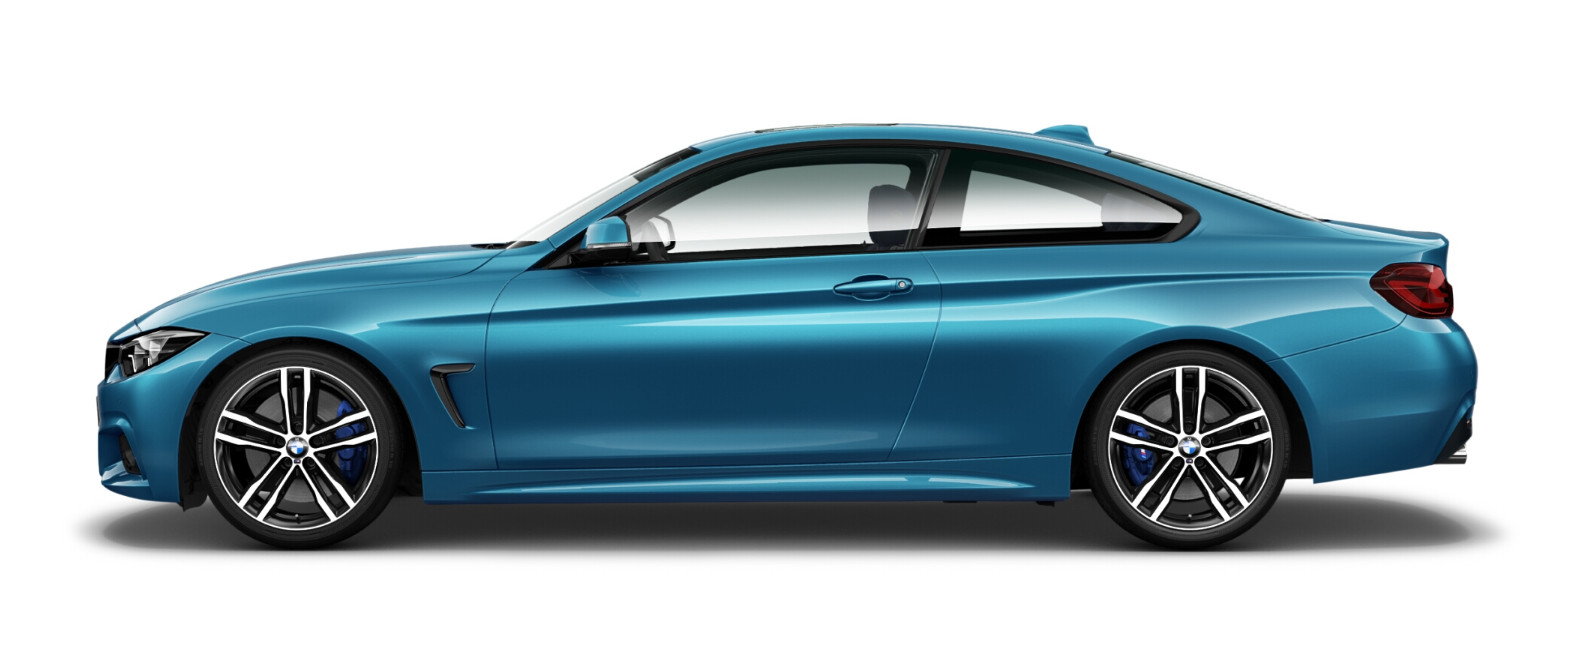 BMW-4-serie-Coupe-leasen-8